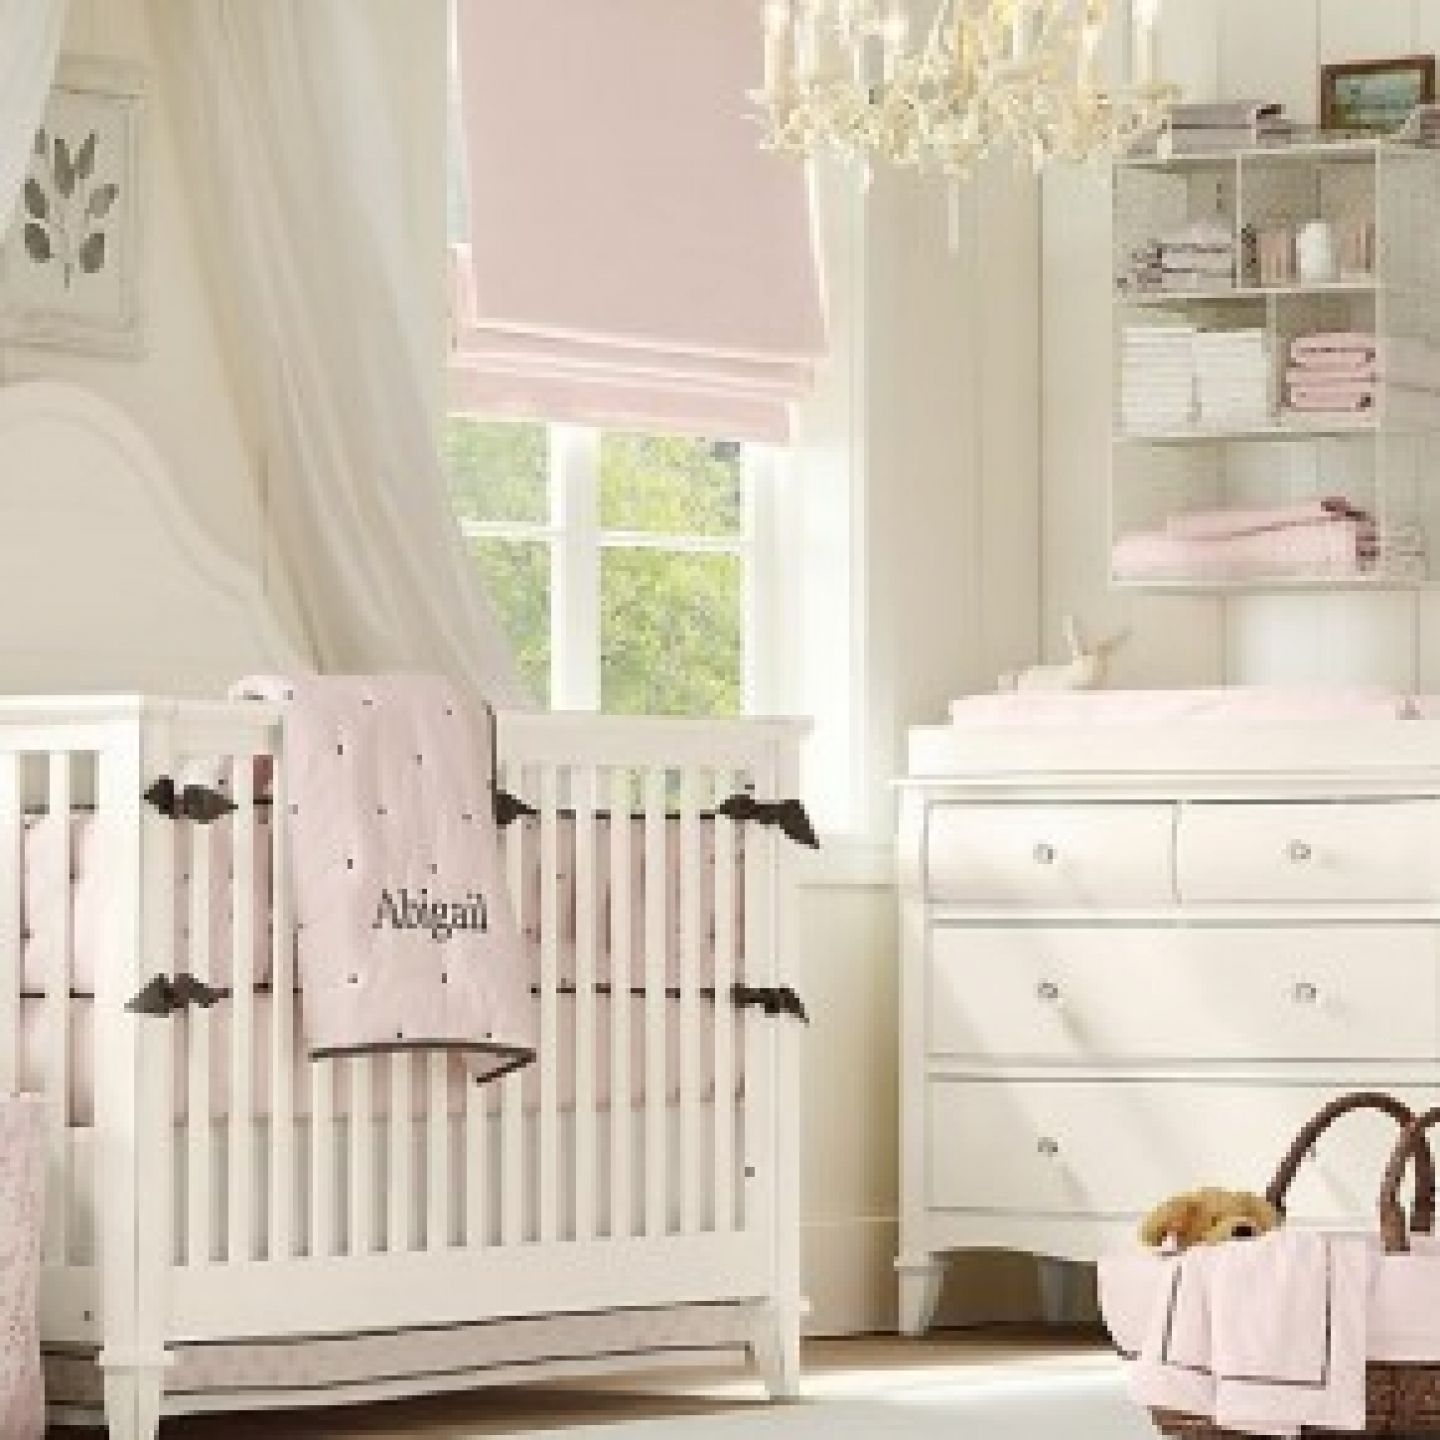 20 Beautiful Baby Boy Nursery Room Design Ideas Full Of: Attractive White Oak Convertible Crib With Toddler Rail